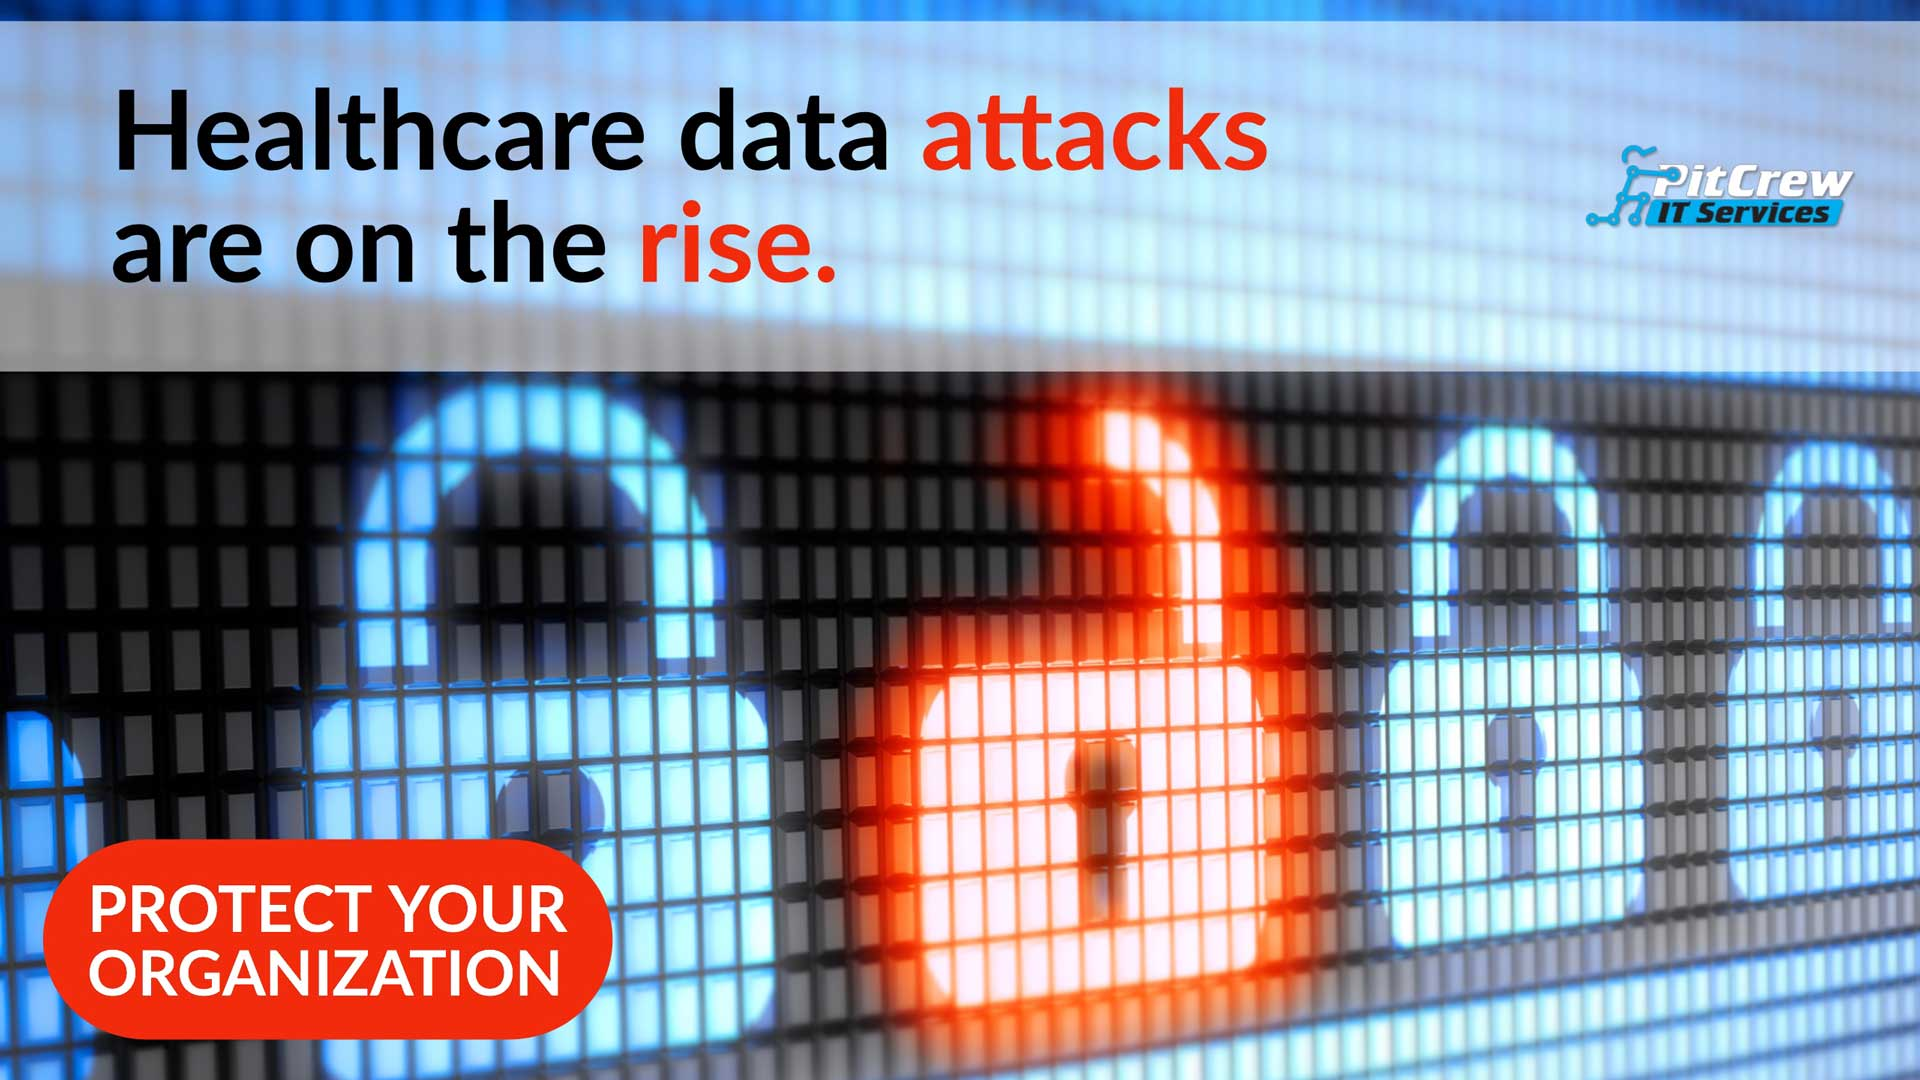 Healthcare Data Attacks on the Rise